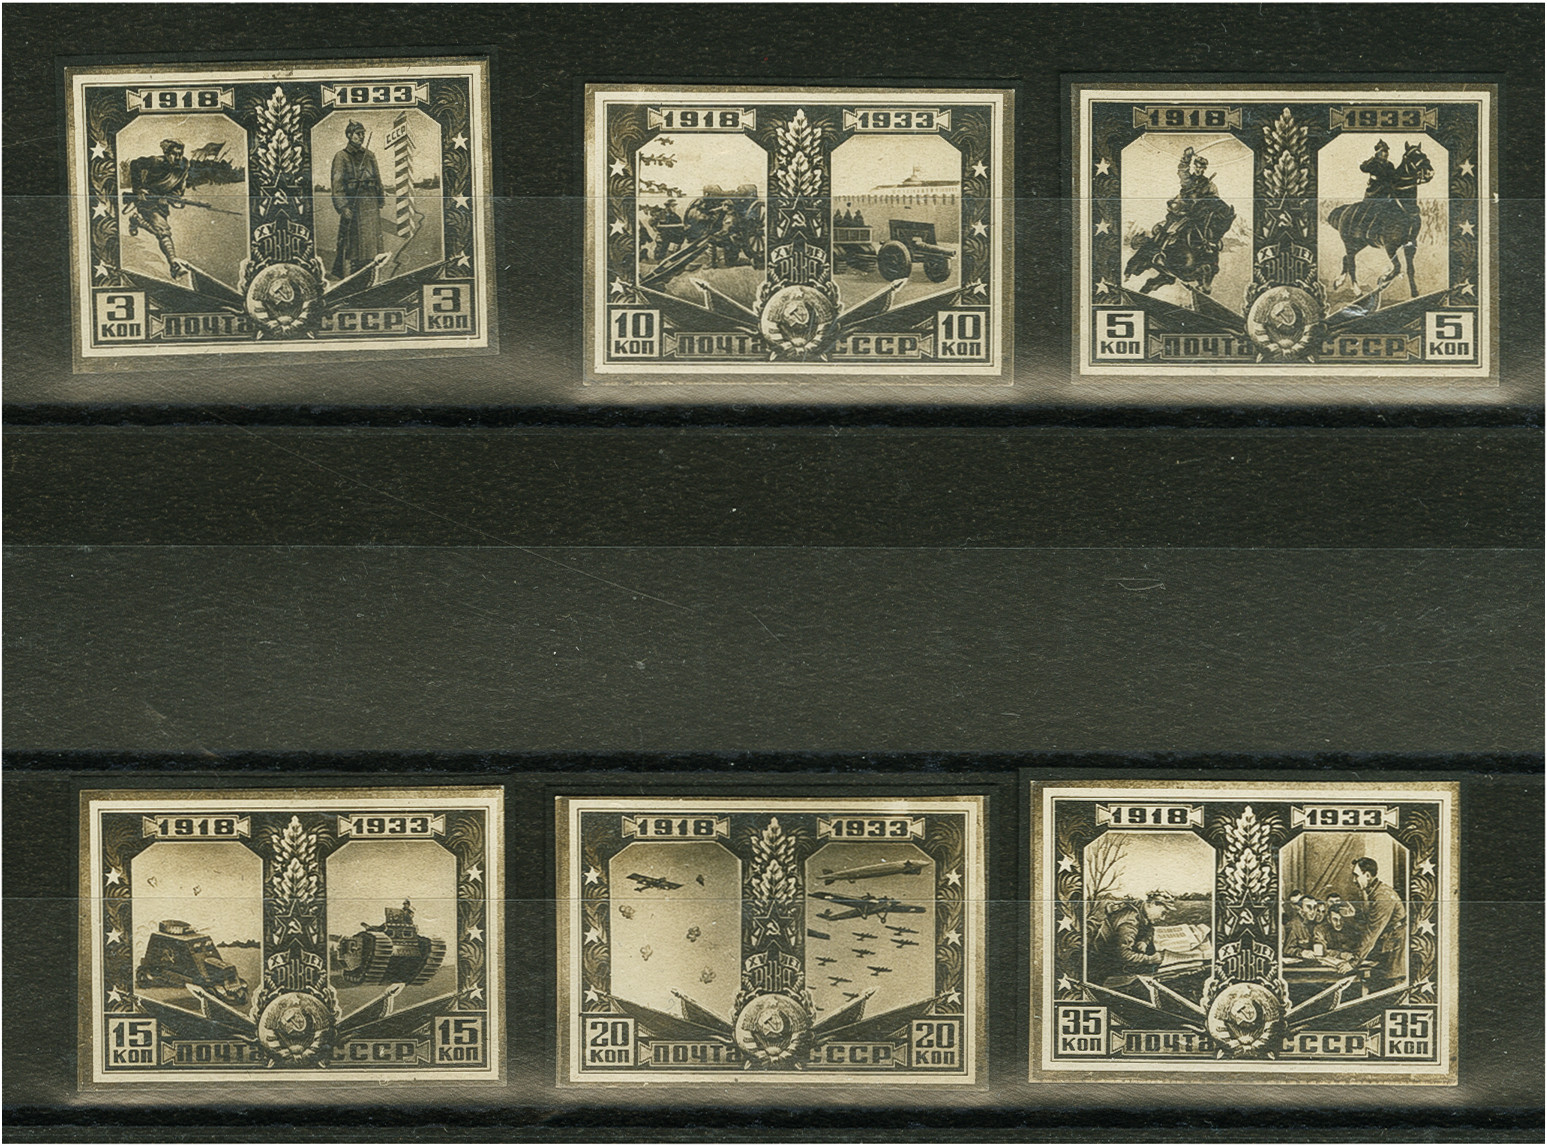 Lot 710 - levant sovjet union -  Heinrich Koehler Auktionen Auction #368- Day 1